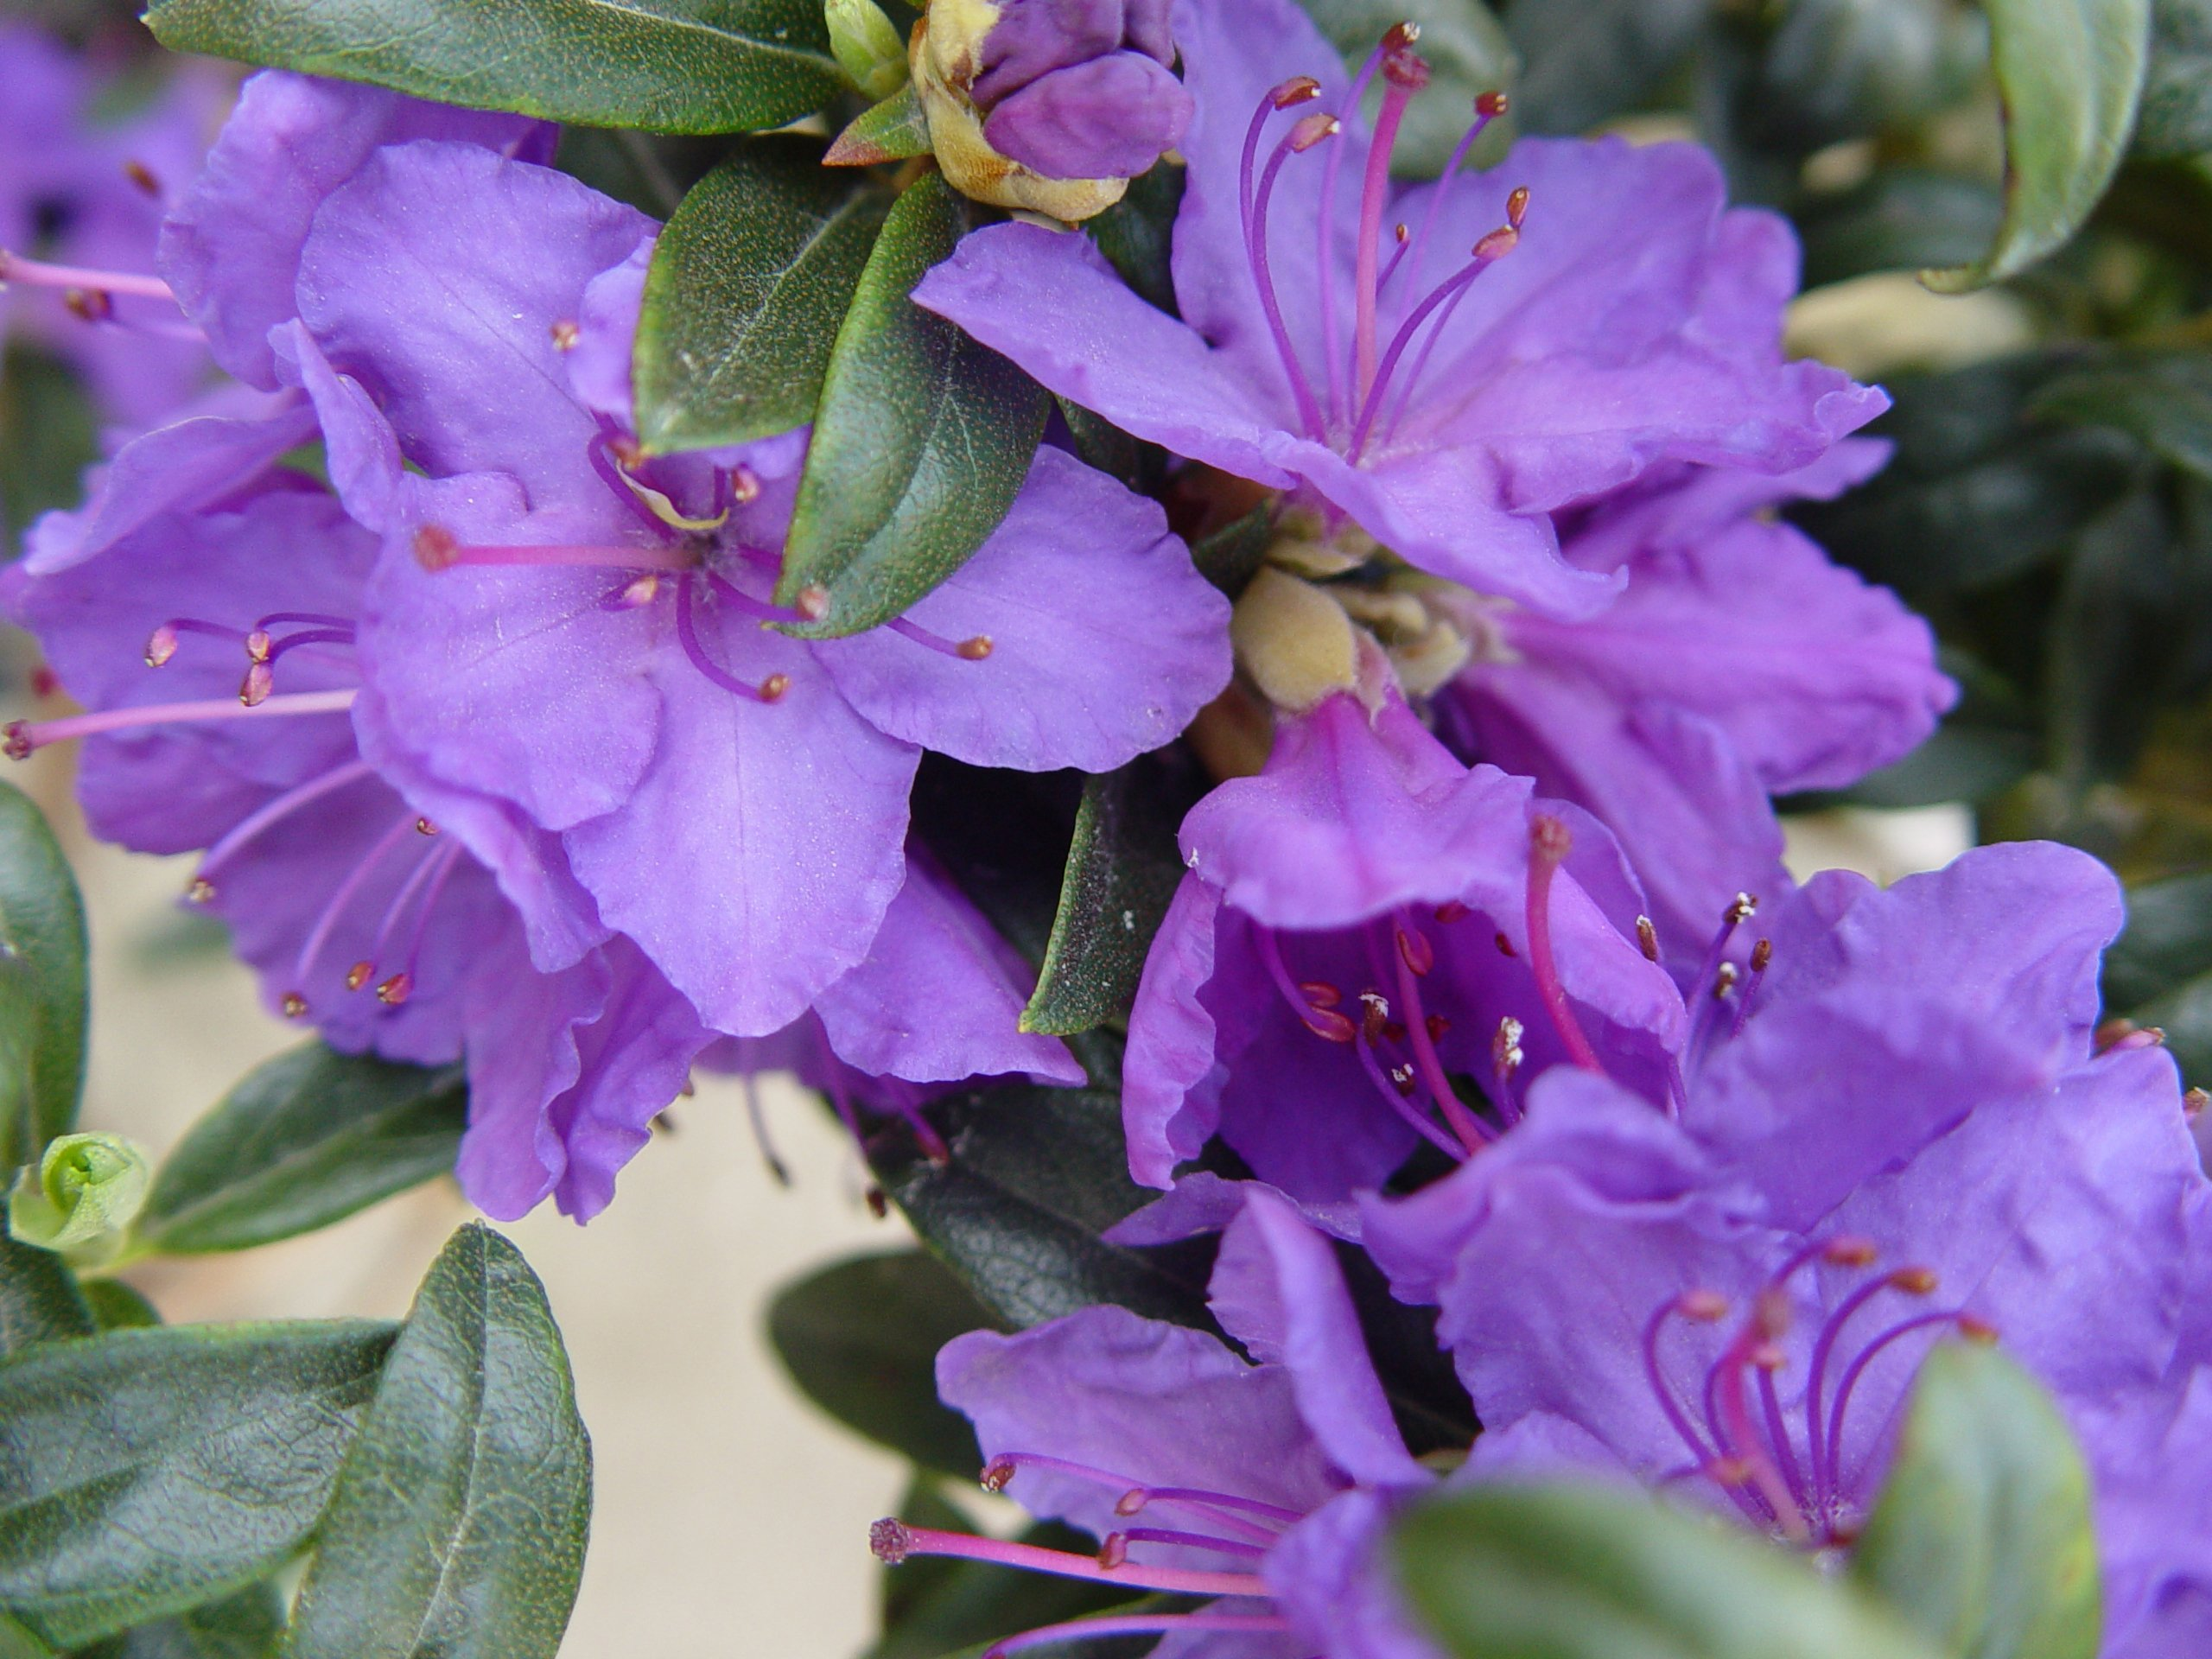 Rhododendron X 'Blue Baron' (Rhododendron) Evergreen, bluish purple flowers, #3 - Size Container by Green Promise Farms (Image #2)